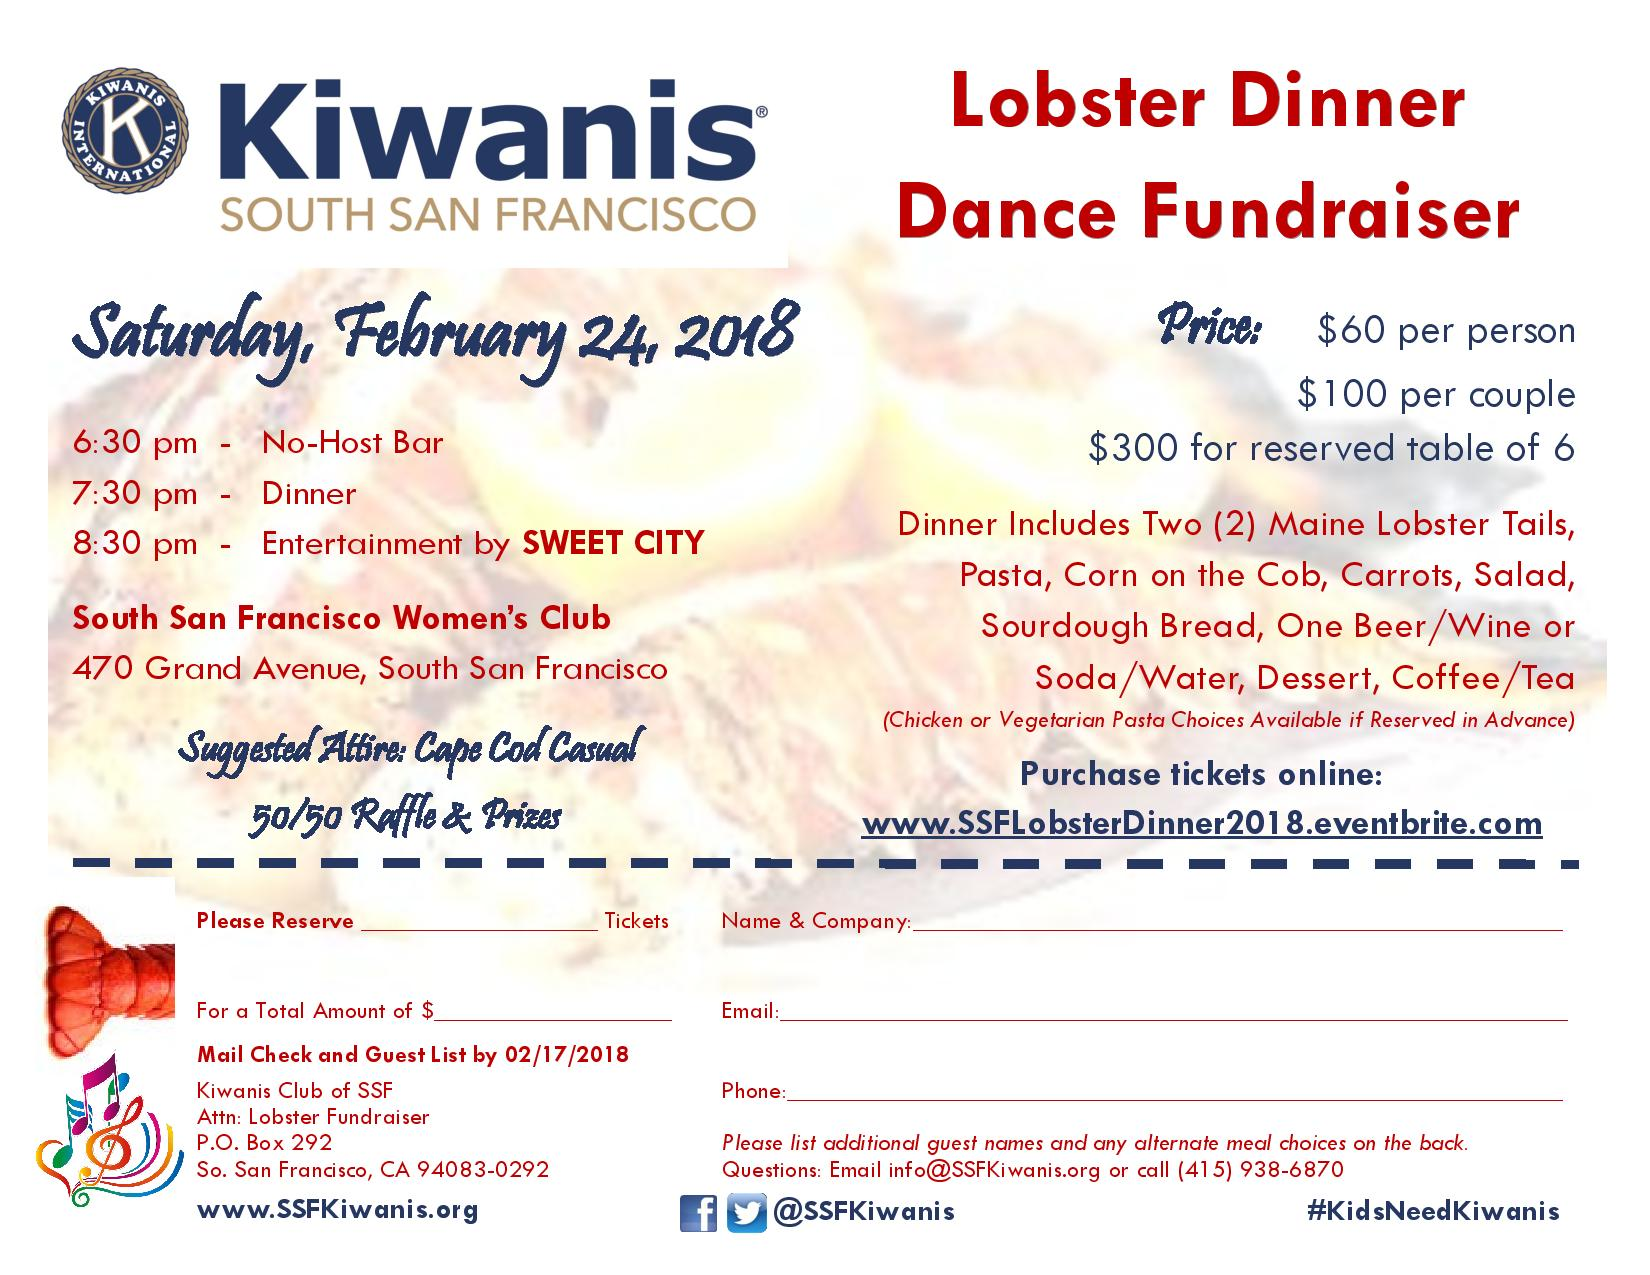 South San Francisco Kiwanis Lobster Dinner / Dance Fundraiser Set for February 24th at Women's Club